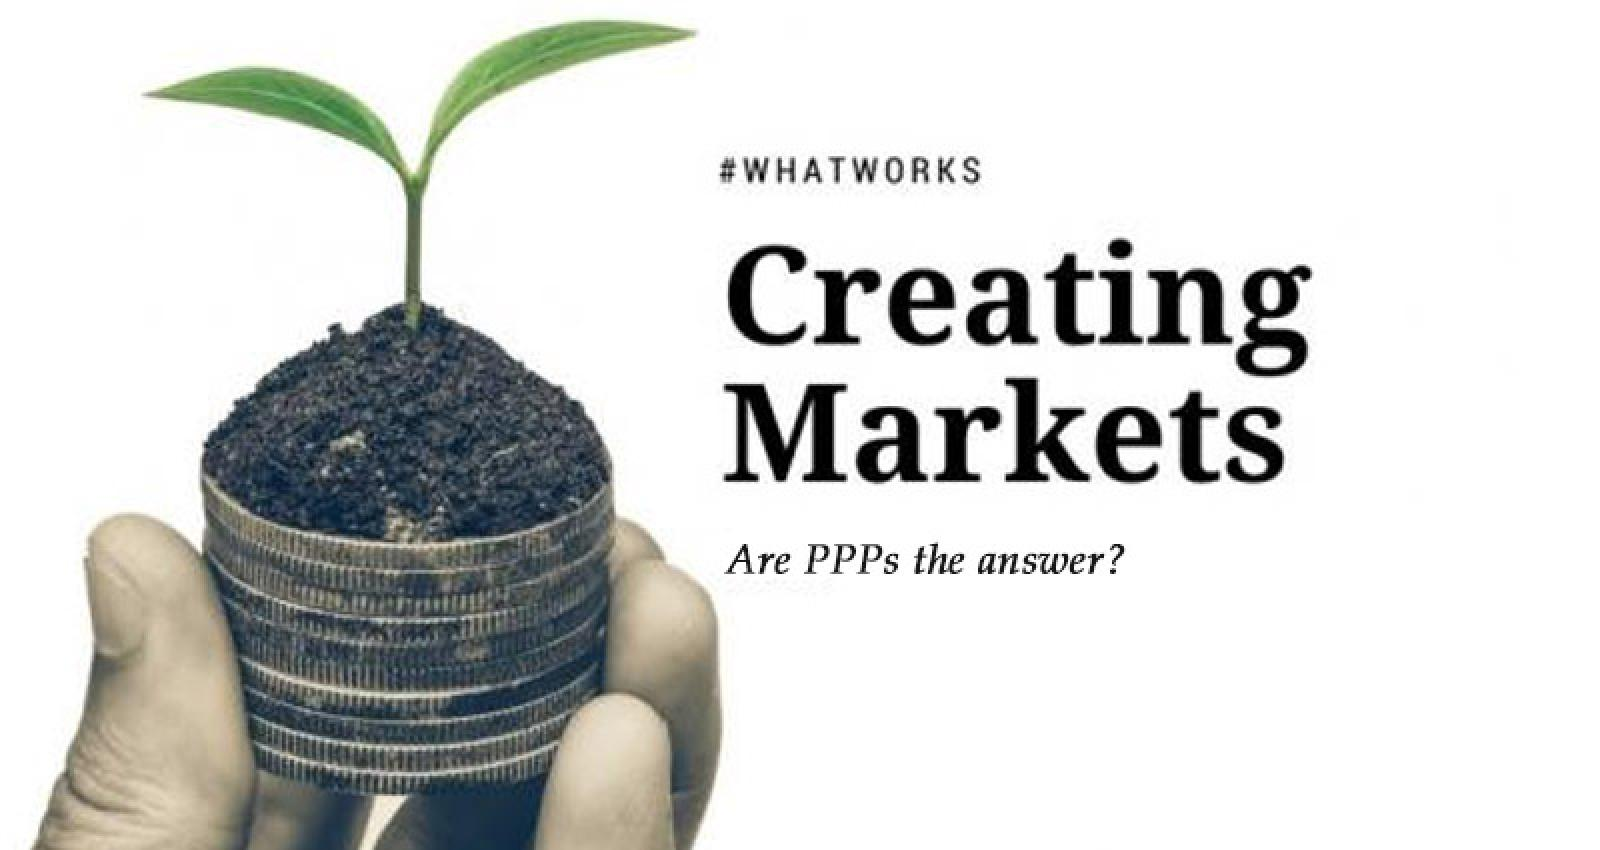 Creating Markets PPPs